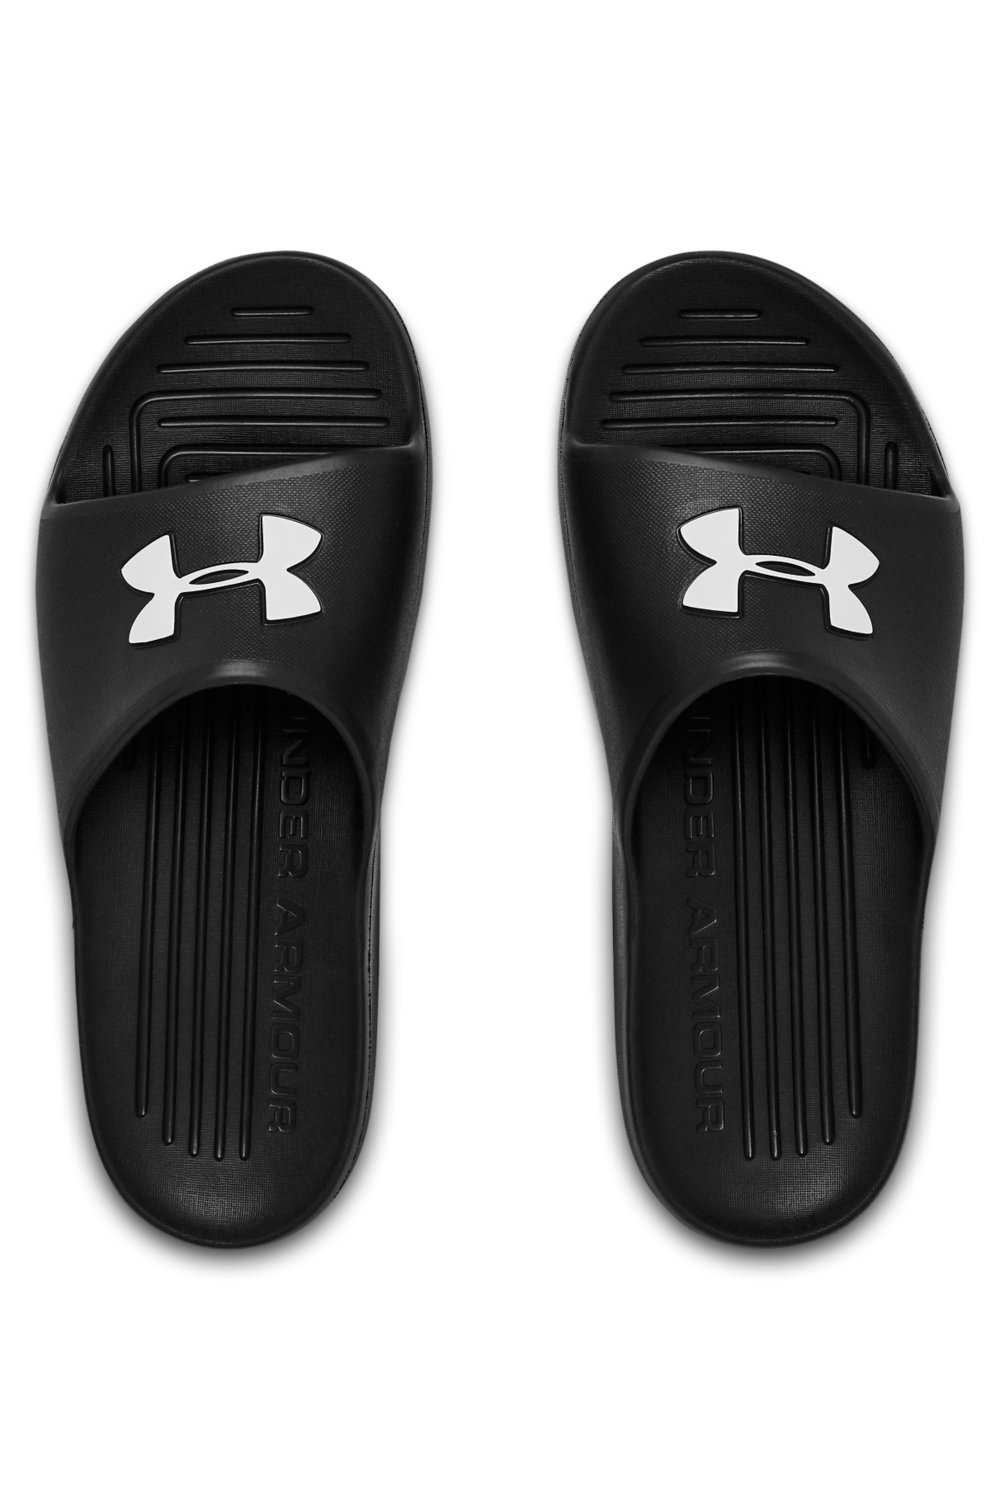 Under Armour papuci negri de casă Core Pth Slide